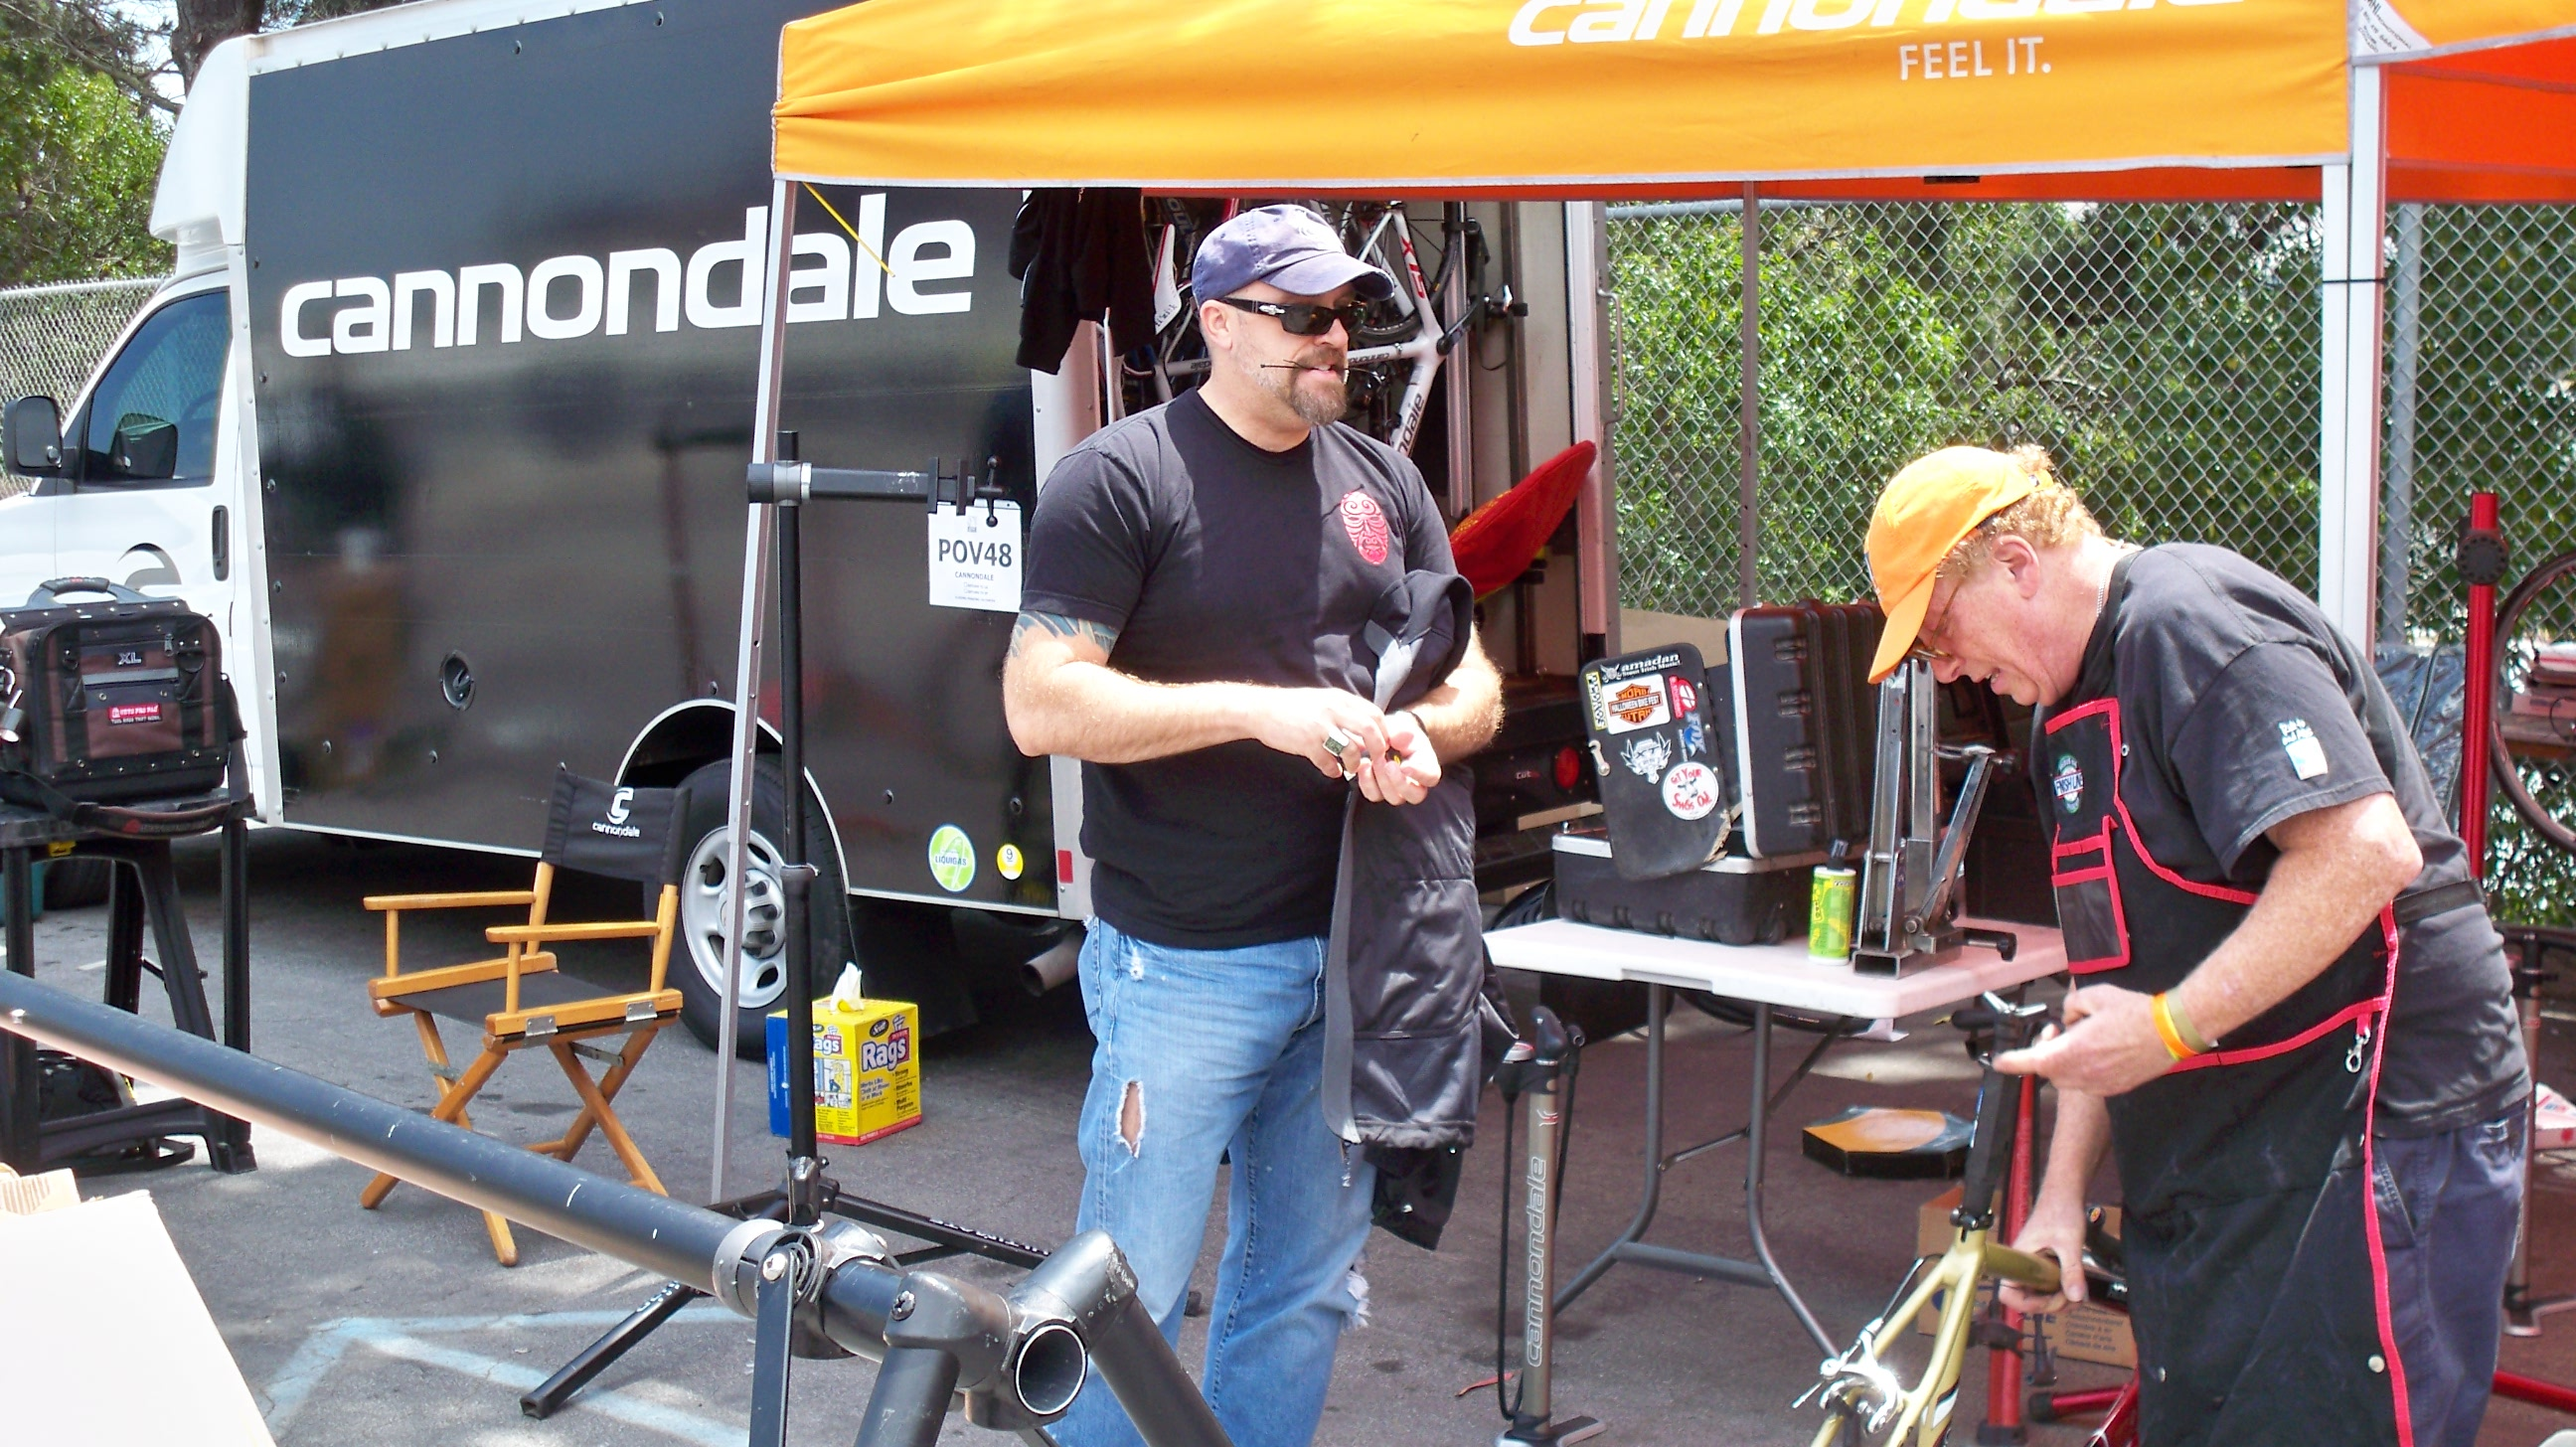 AIDS/Lifecycle Cannondale Bike Techs